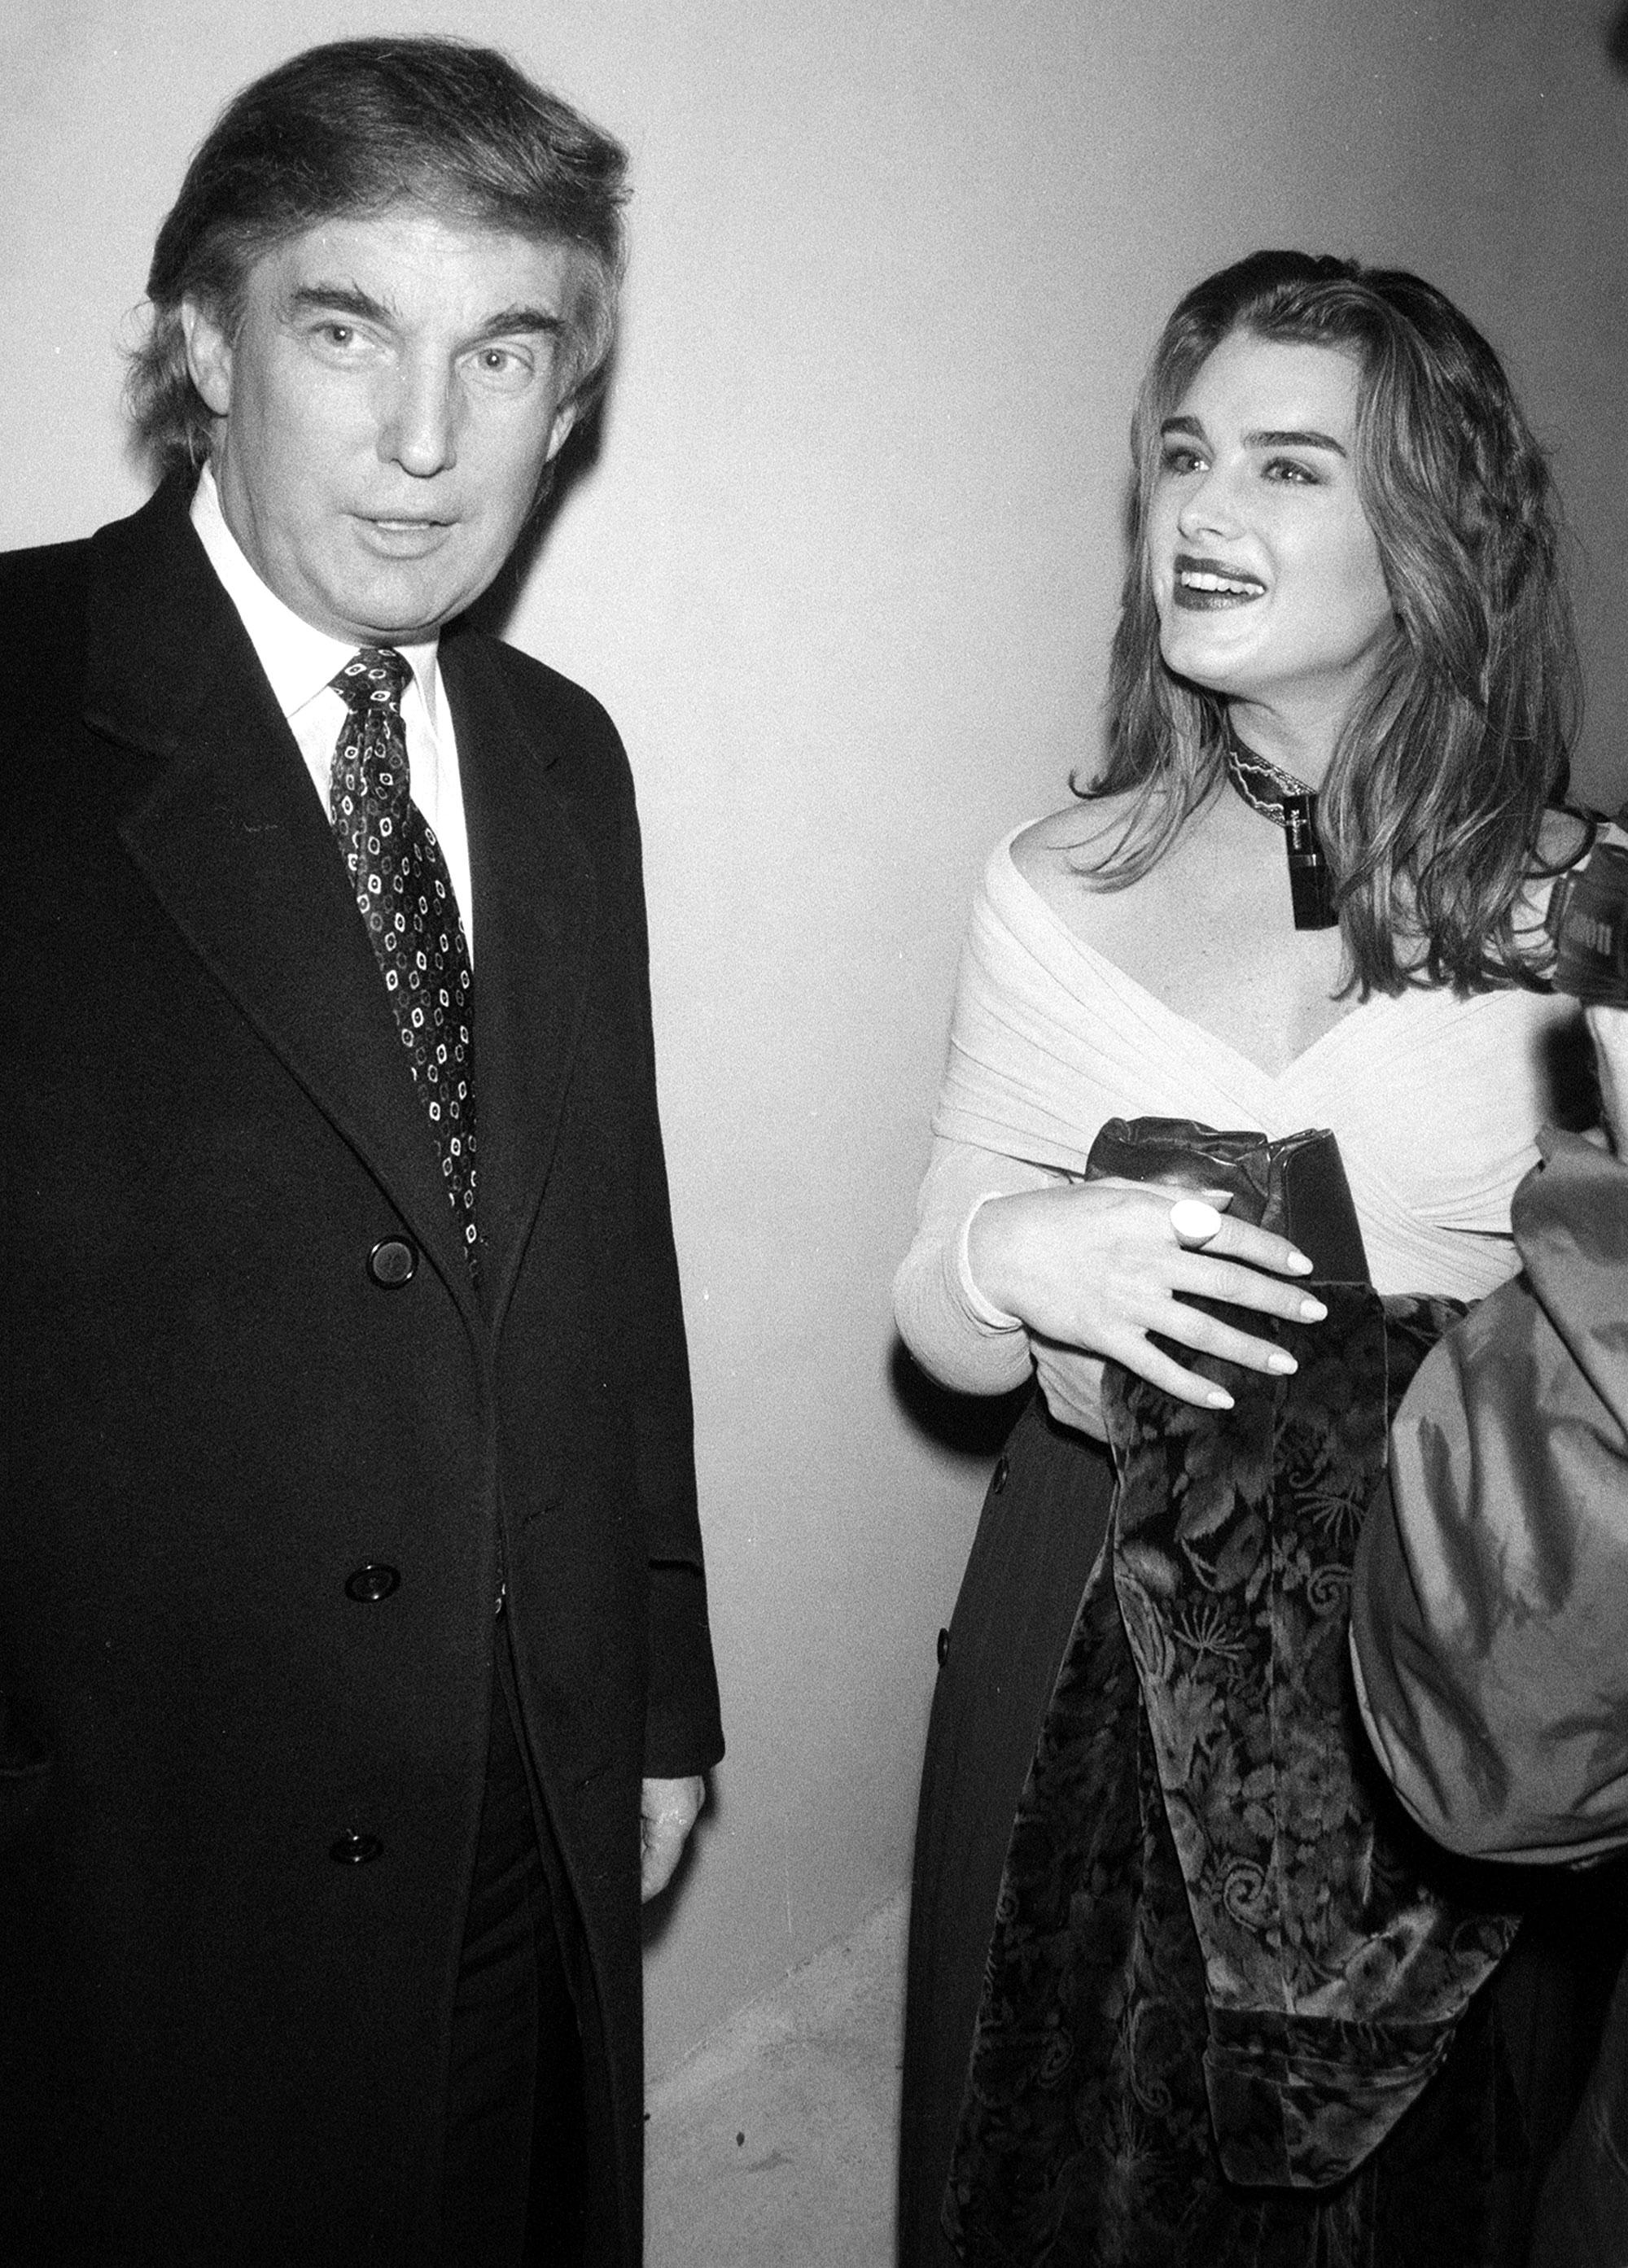 "<p><b>""I was on location doing a movie and he called me right after he gotten a divorce. And he said, 'I really think we should date because you're America's sweetheart and I'm America's richest man and the people would love it.""</b> — Brooke Shields, <span>recounting Donald Trump's pickup line</span>, on <i>Watch What Happens Live</i></p>"